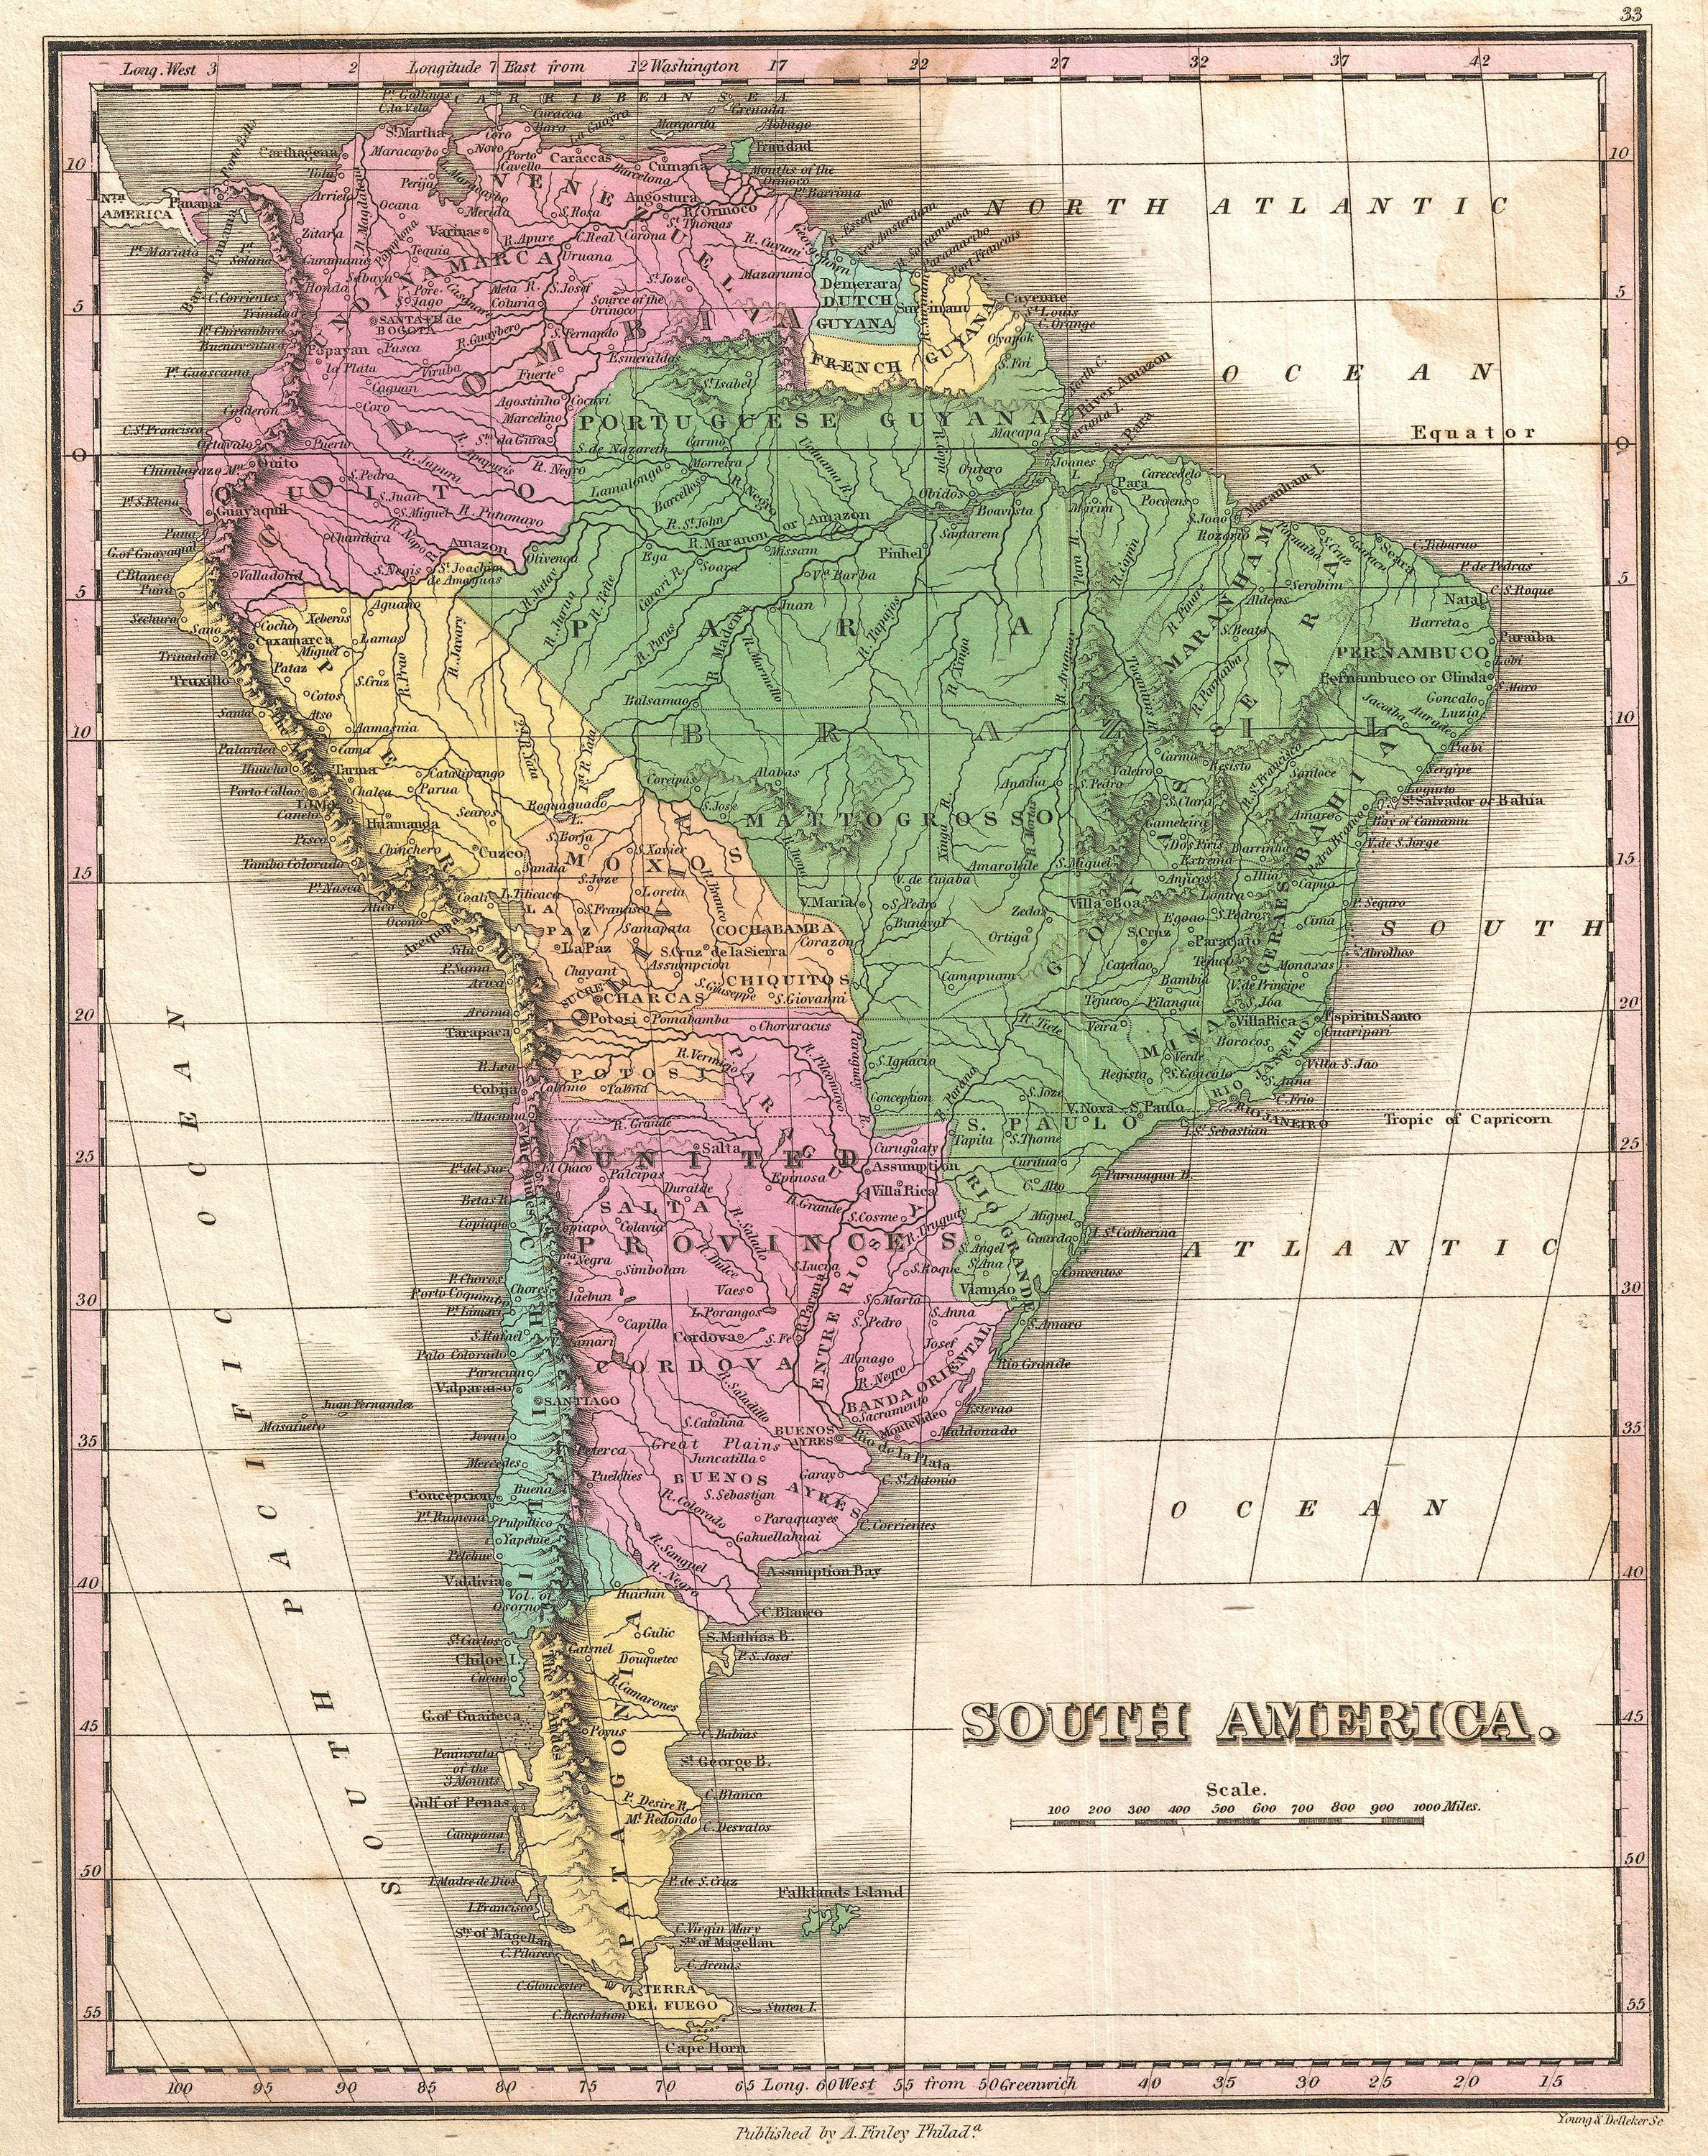 File:1827 Finley Map of South America - Geographicus ... on sw asia map games, southwest asia map games, south america test, middle east map games, south america international airports, south american countries games, western united states map games, the united states map games, europe map games, mid east map games, social studies map games, south east asian games, south america home, ukraine map games, south america google earth, south america united states, south america timelines, south america board games, northern eurasia map games, south america enchanted learning,